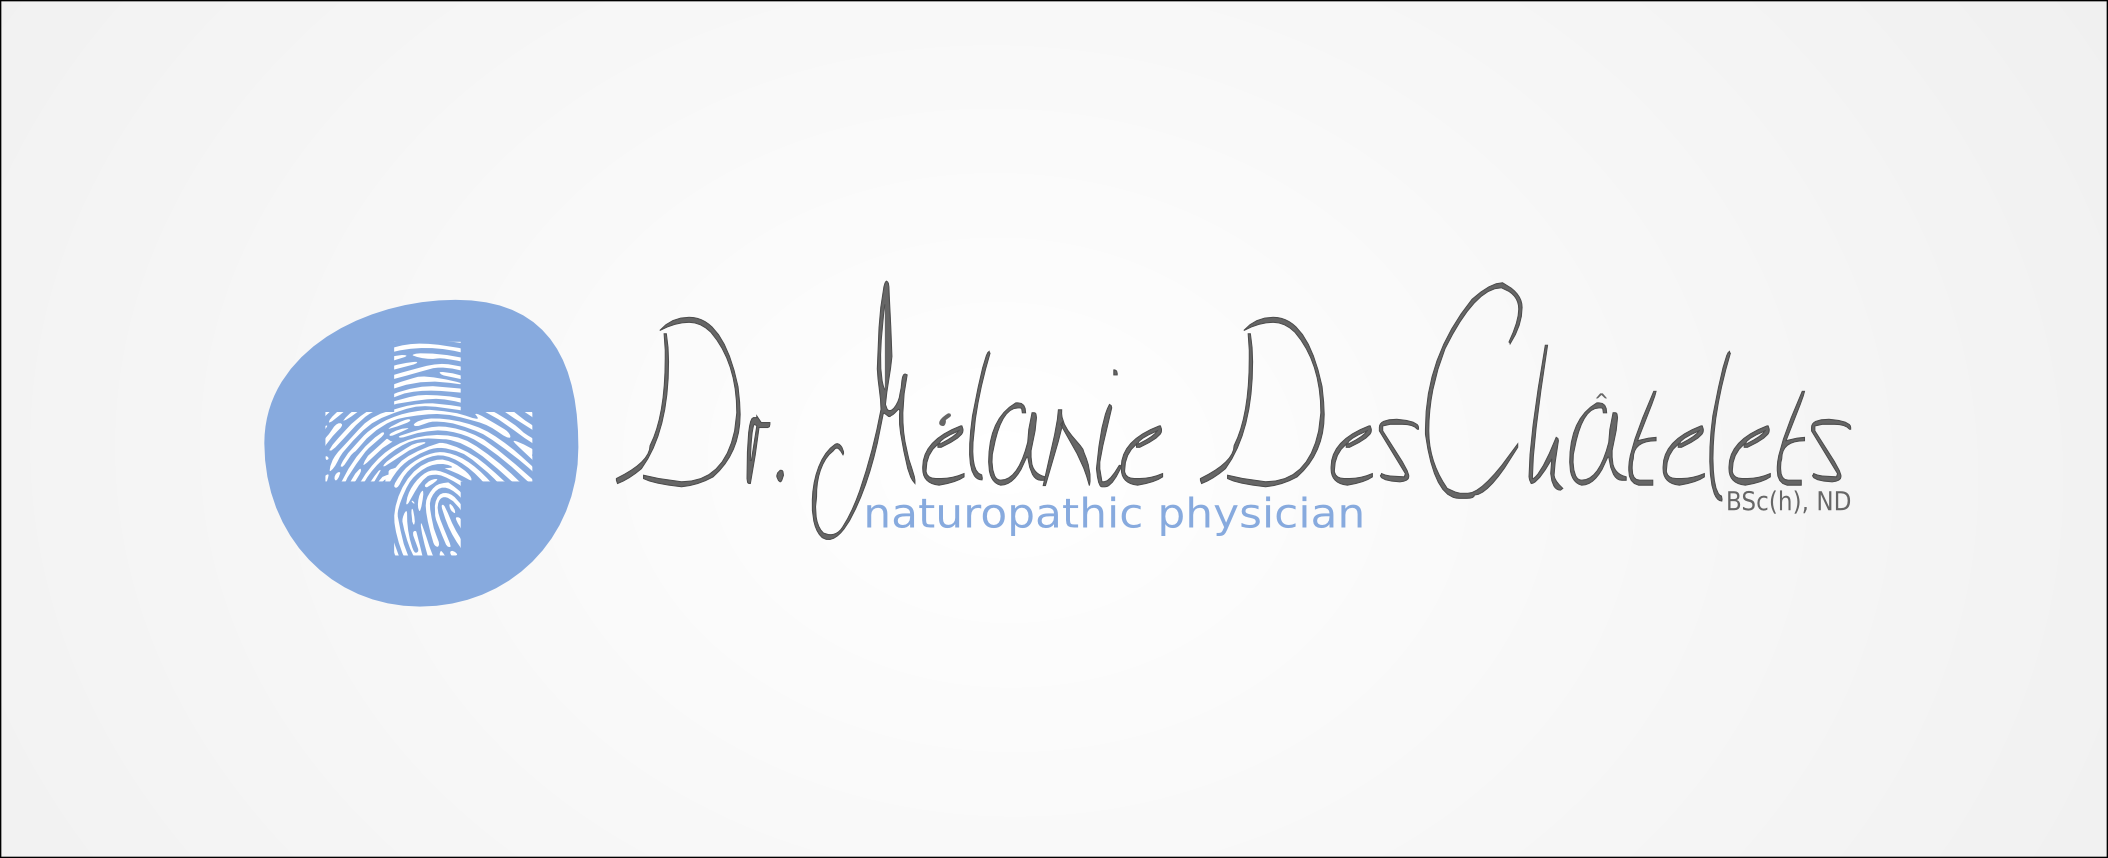 Logo Design by Andrew Bertram - Entry No. 156 in the Logo Design Contest Artistic Logo Design for Dr Mélanie DesChâtelets.